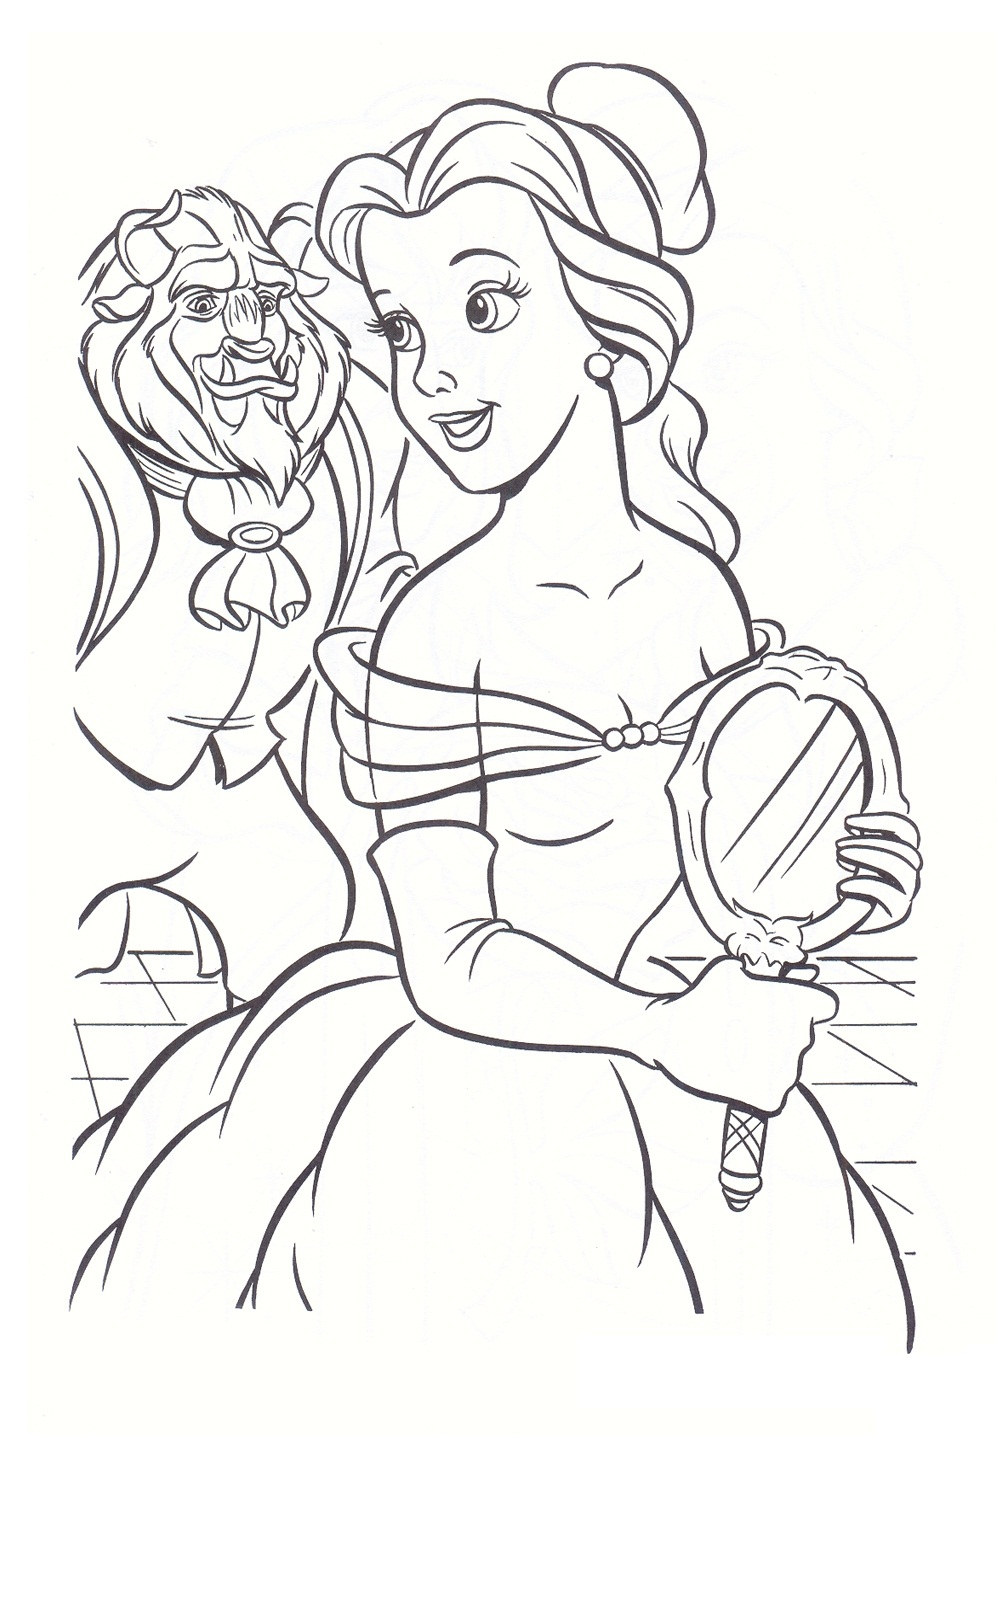 Beauty and the beast rose stained glass coloring page for Beauty and the beast coloring pages disney